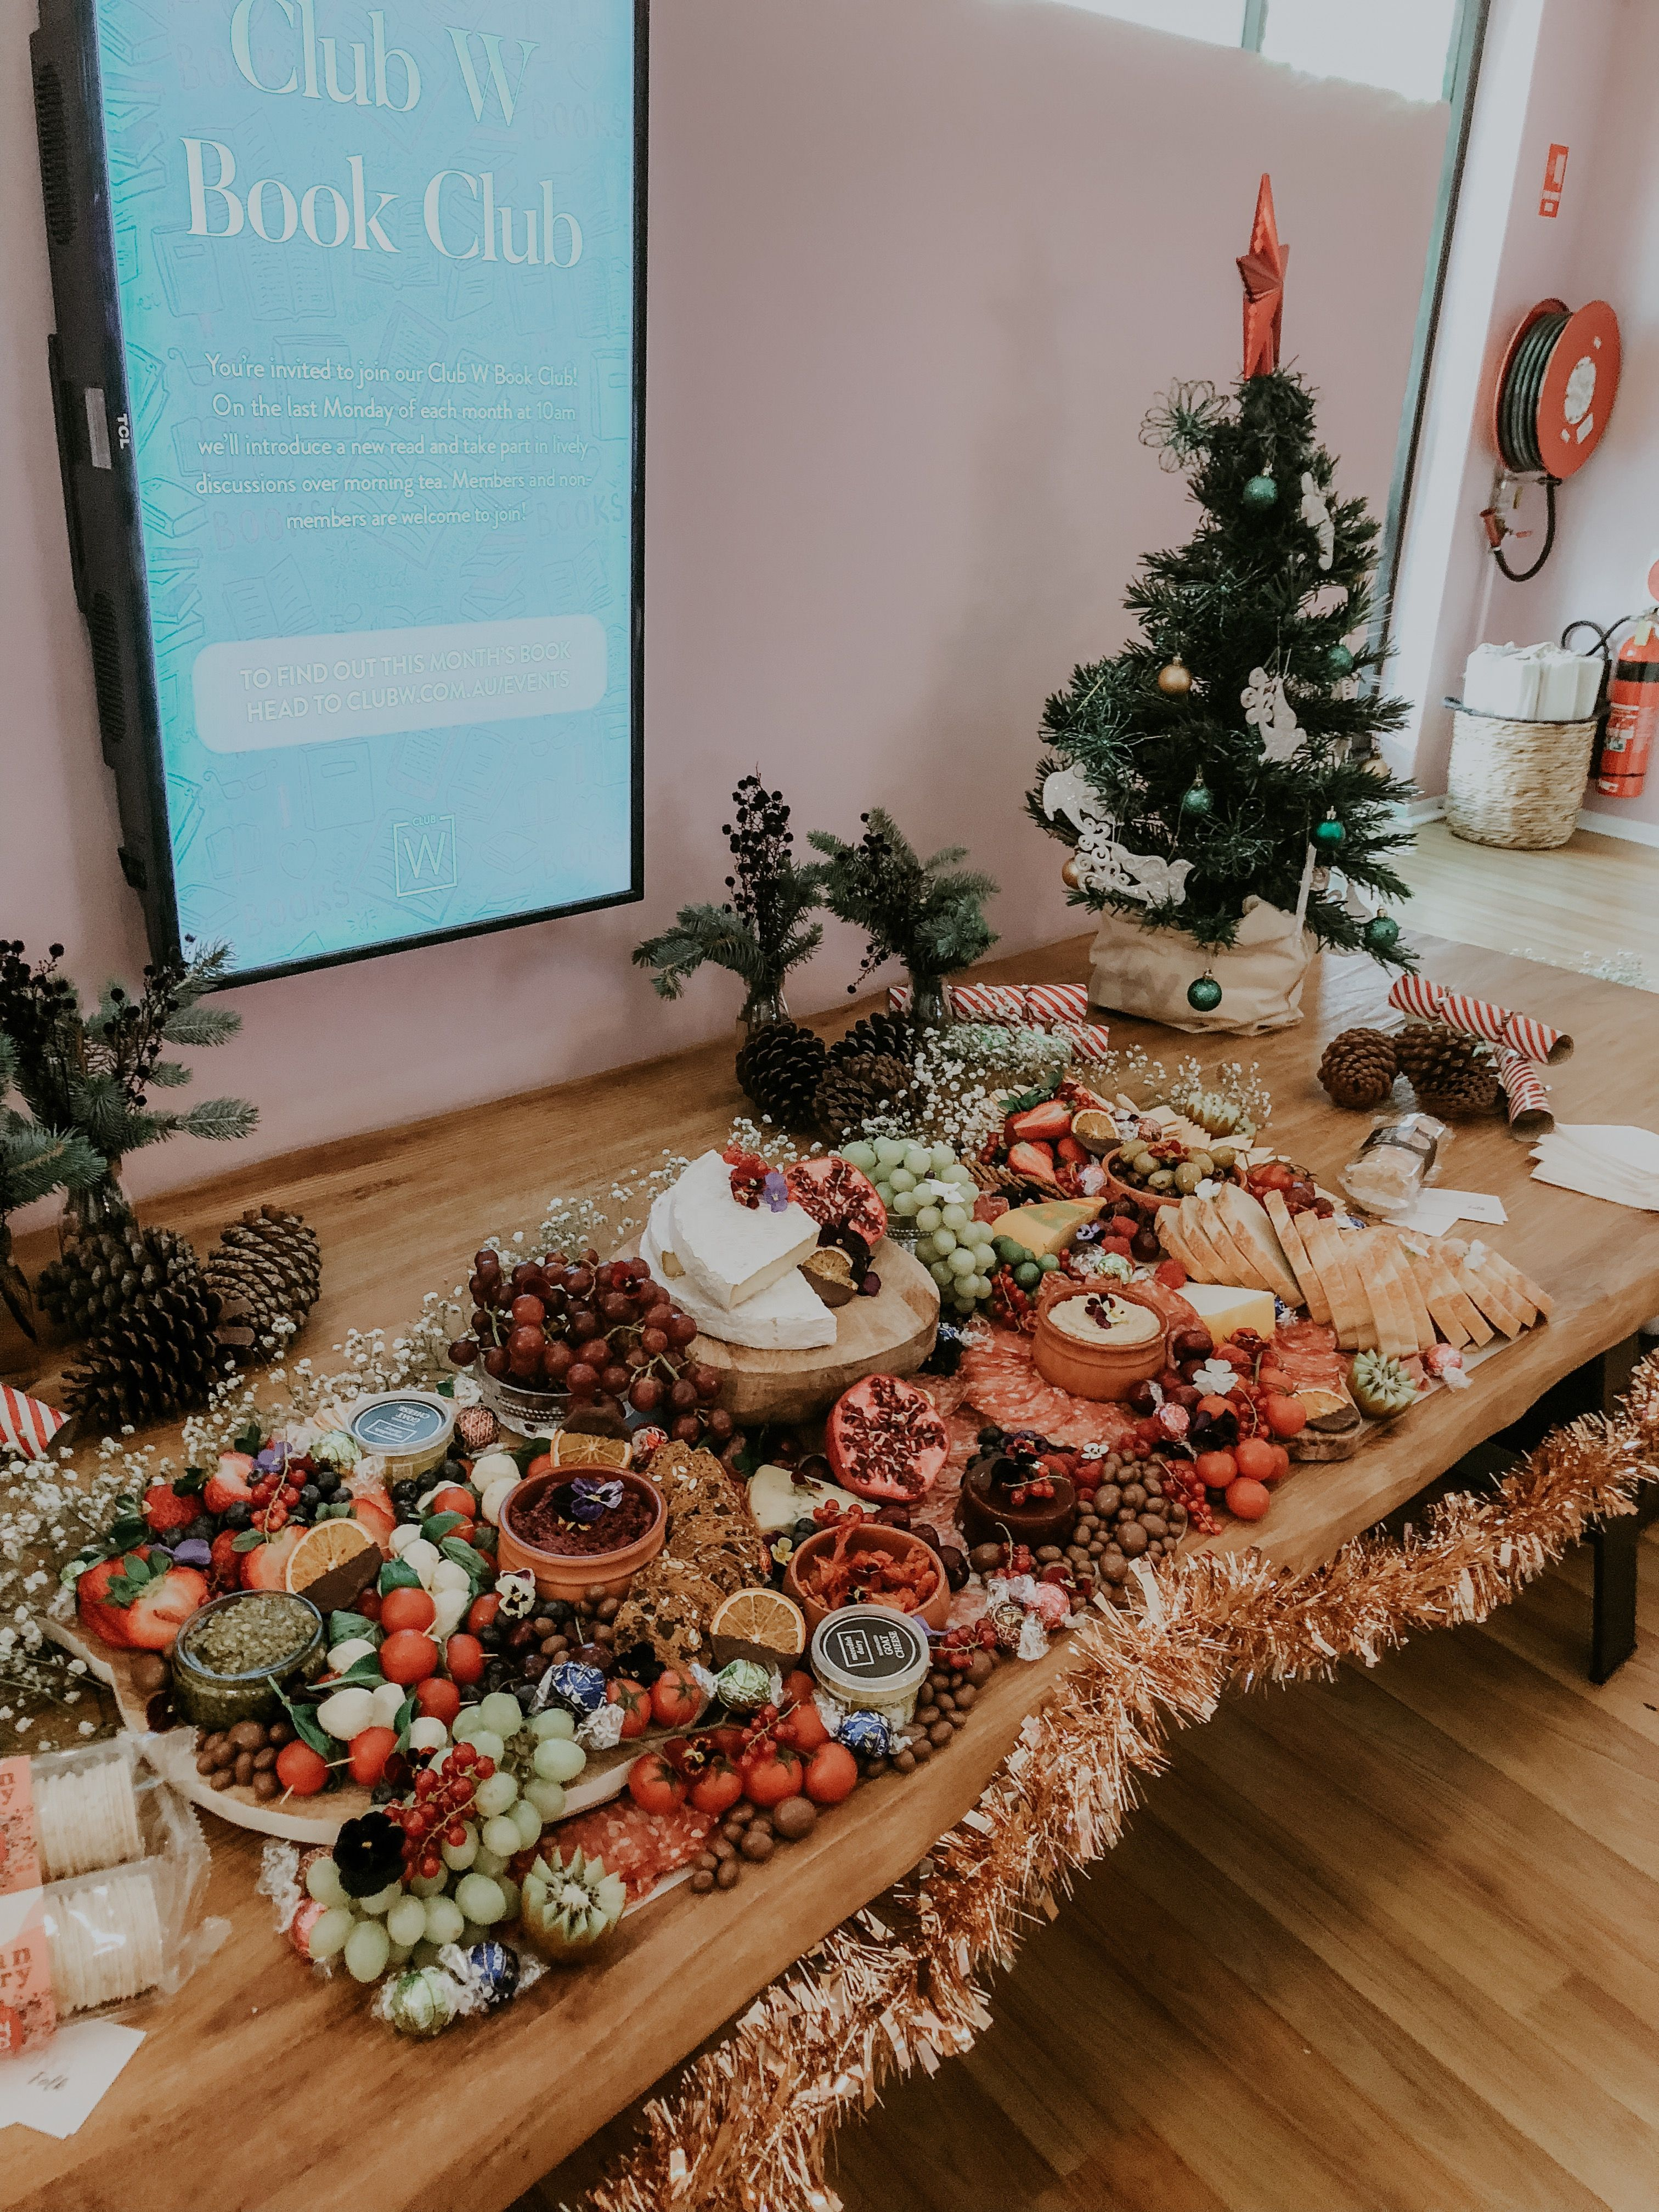 Buffet On Christmas Day 2020 Pin by Beatriceemanuela on Food and drink in 2020 | Christmas